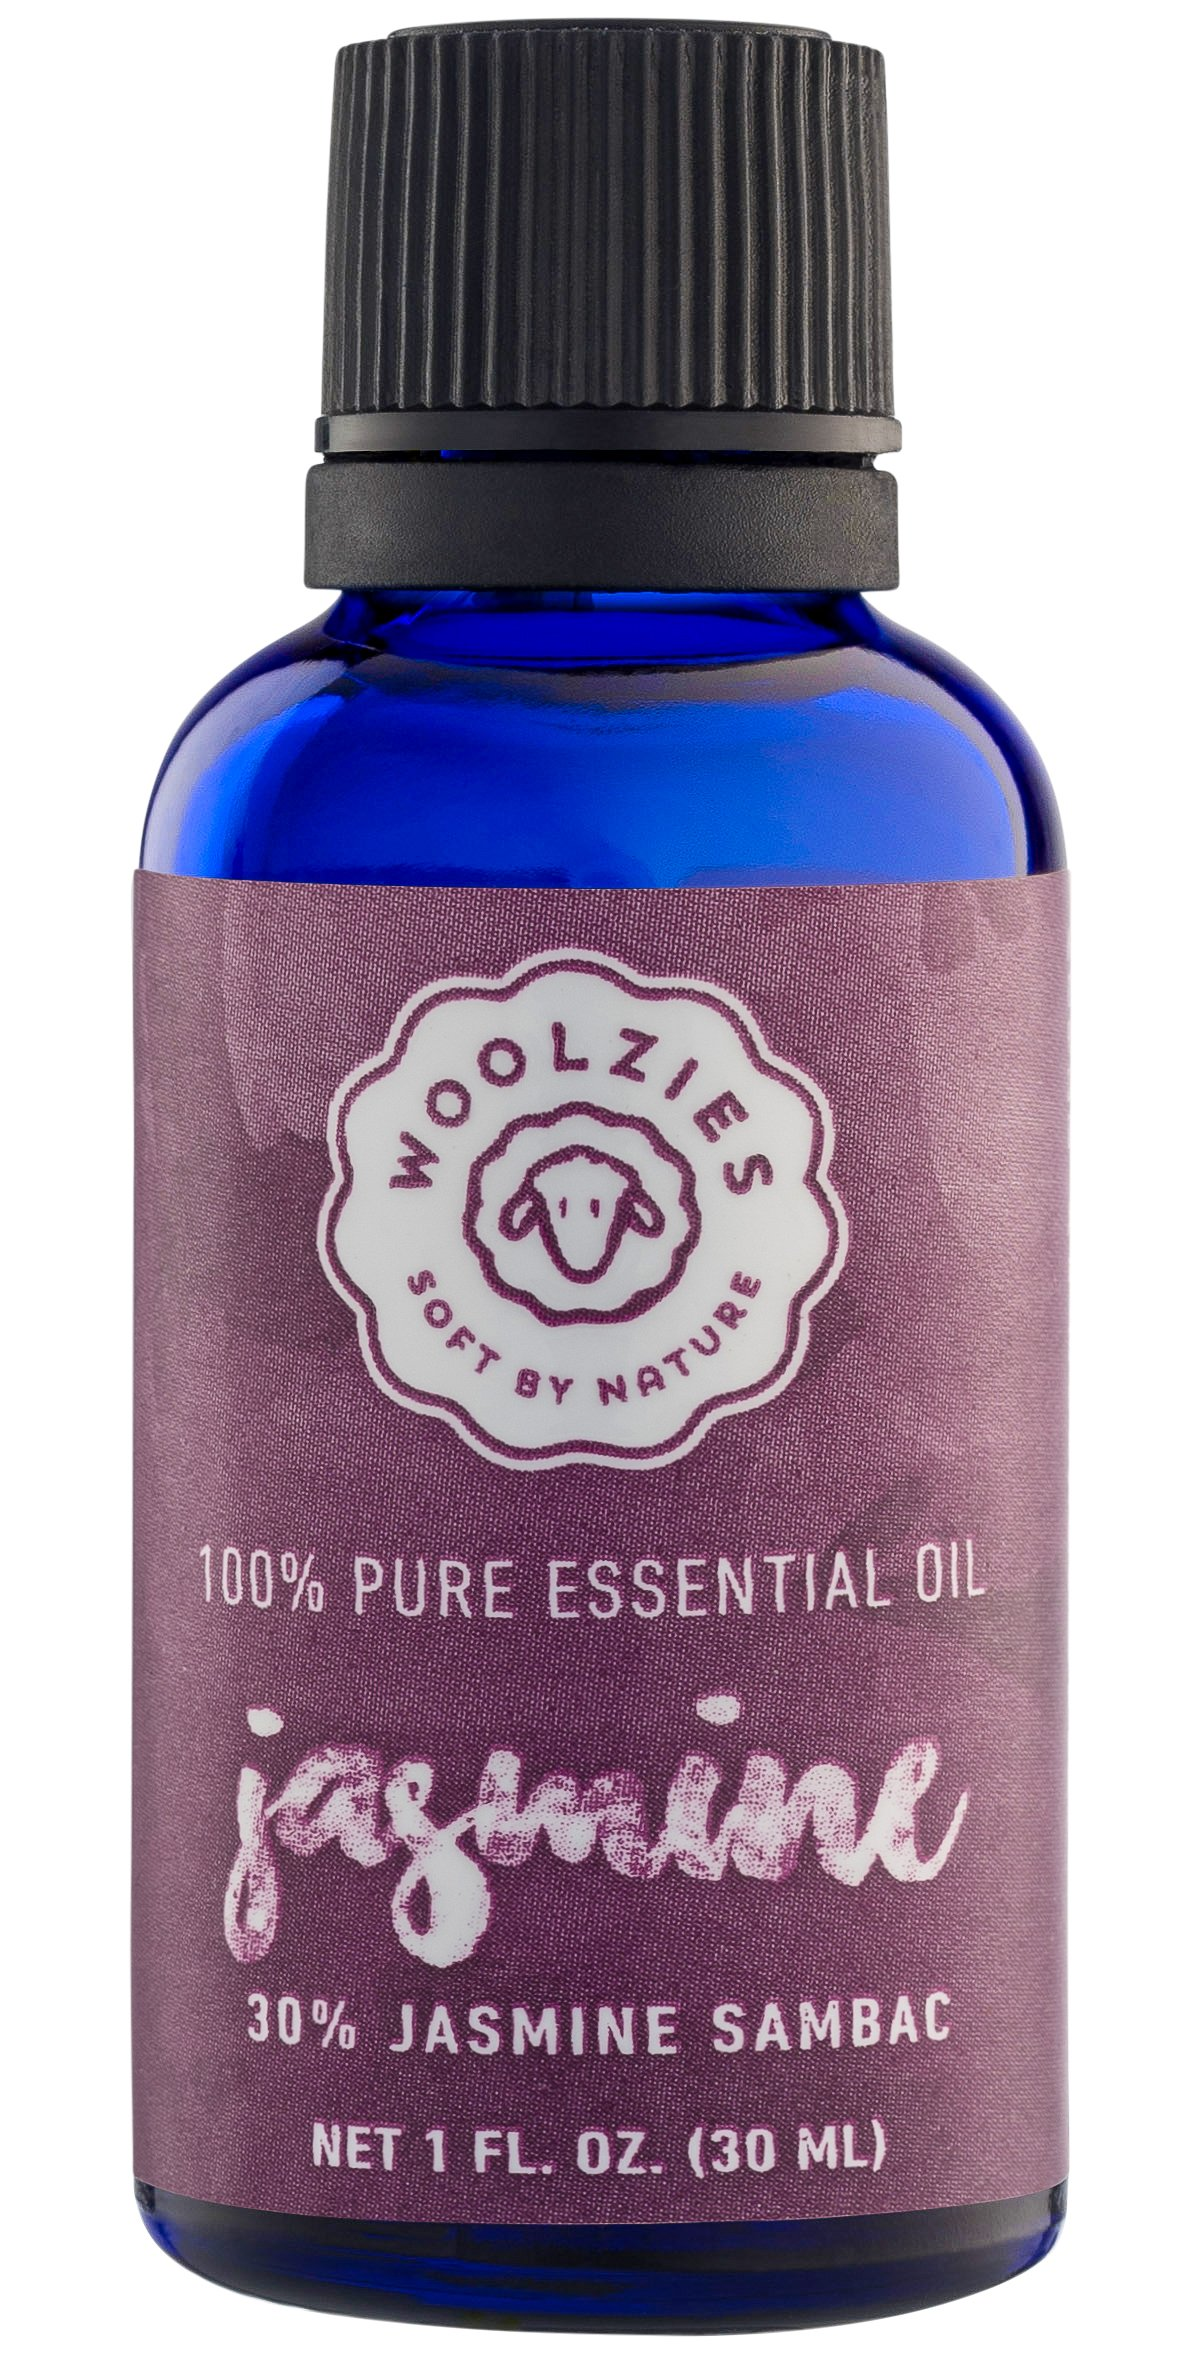 Woolzies Jasmine essential oil Blend 100% natural, Therapeutic grade